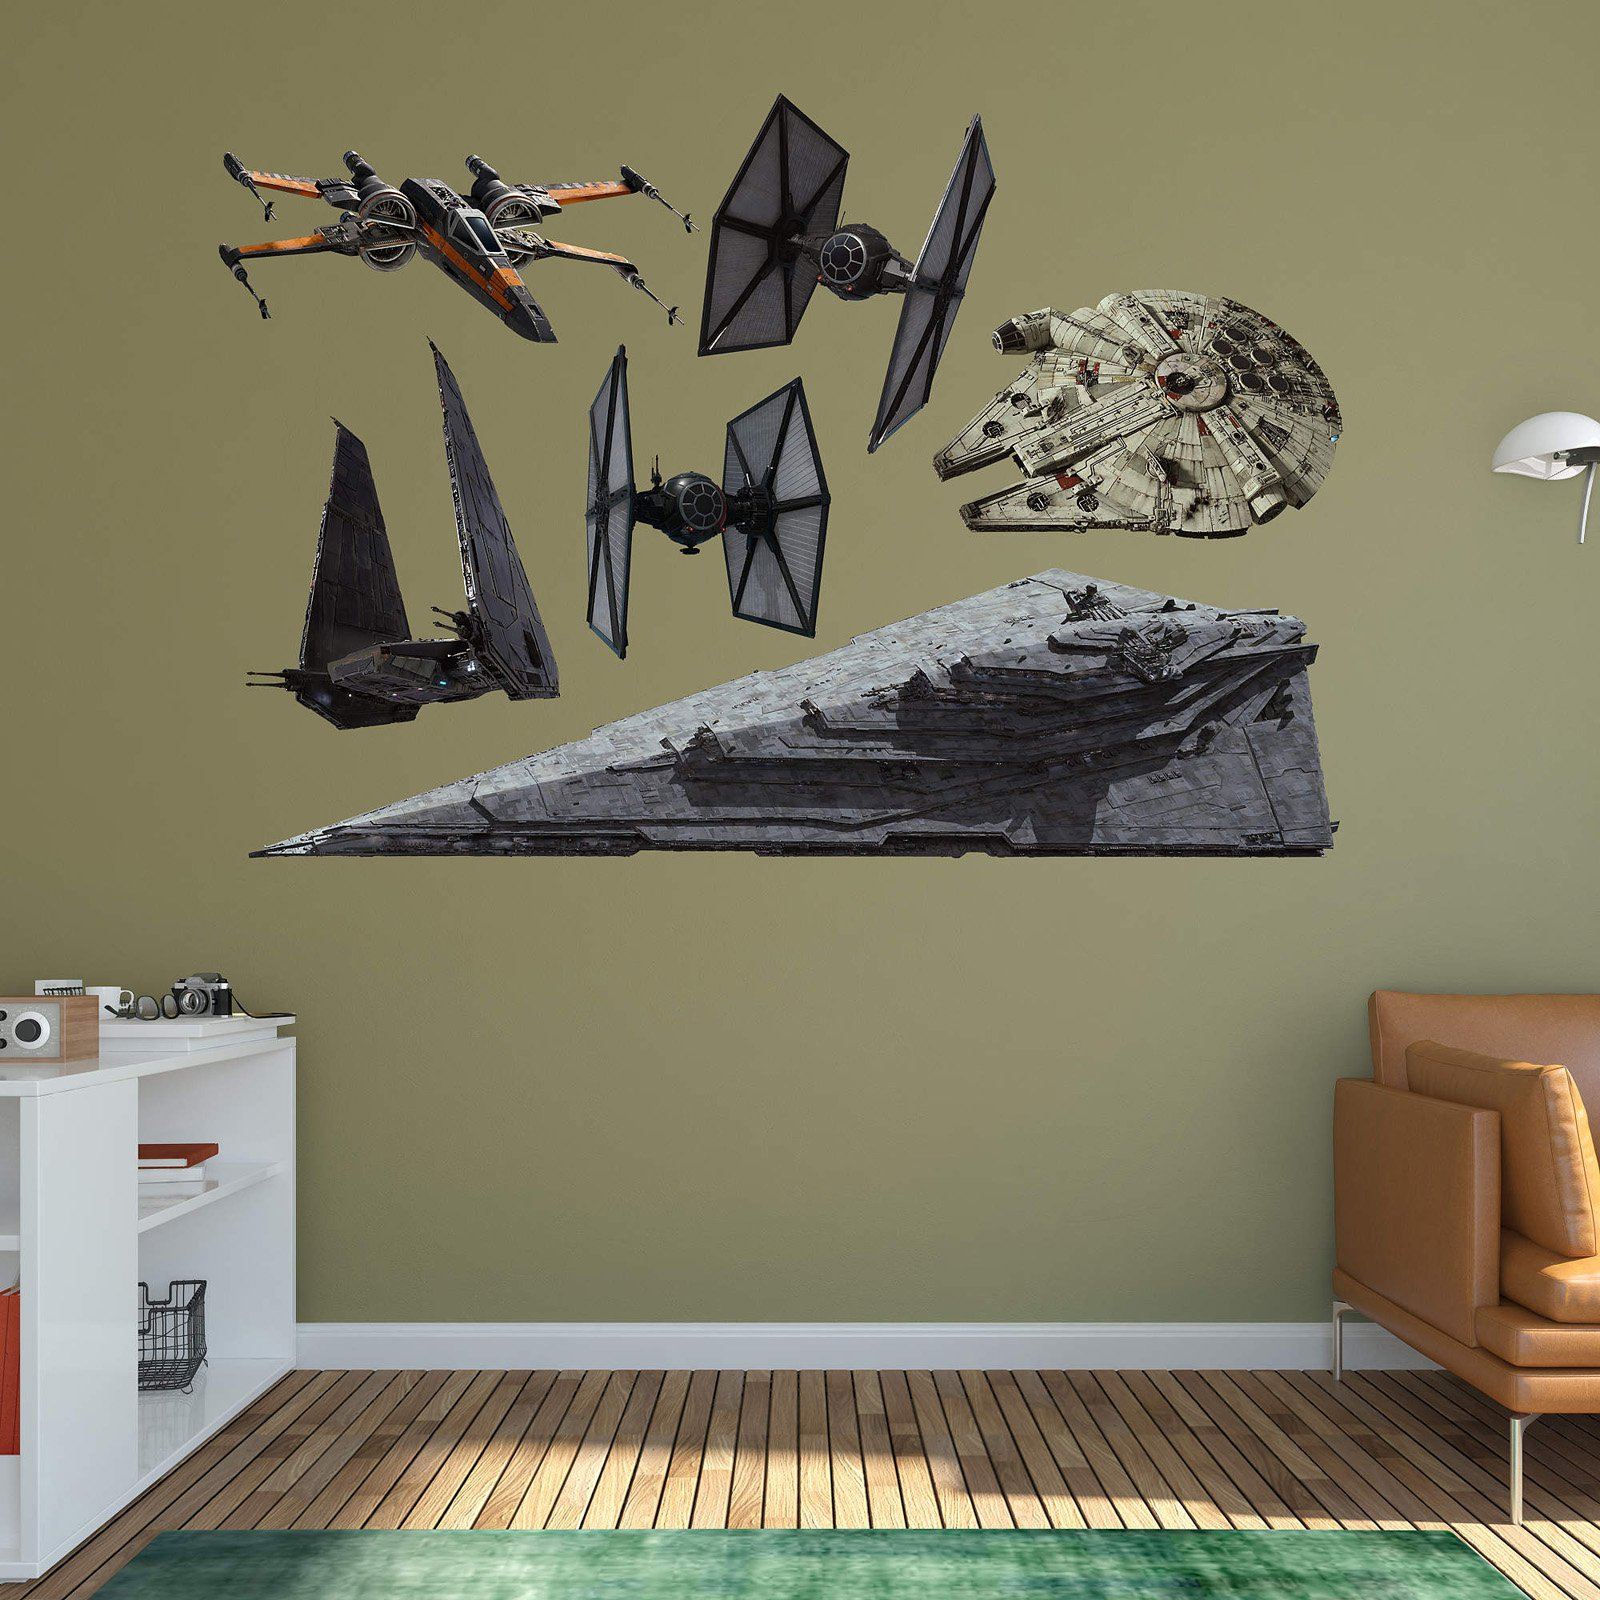 Fathead Star Wars Episode VII - The Force Awakens Spaceships Wall Decal Collection